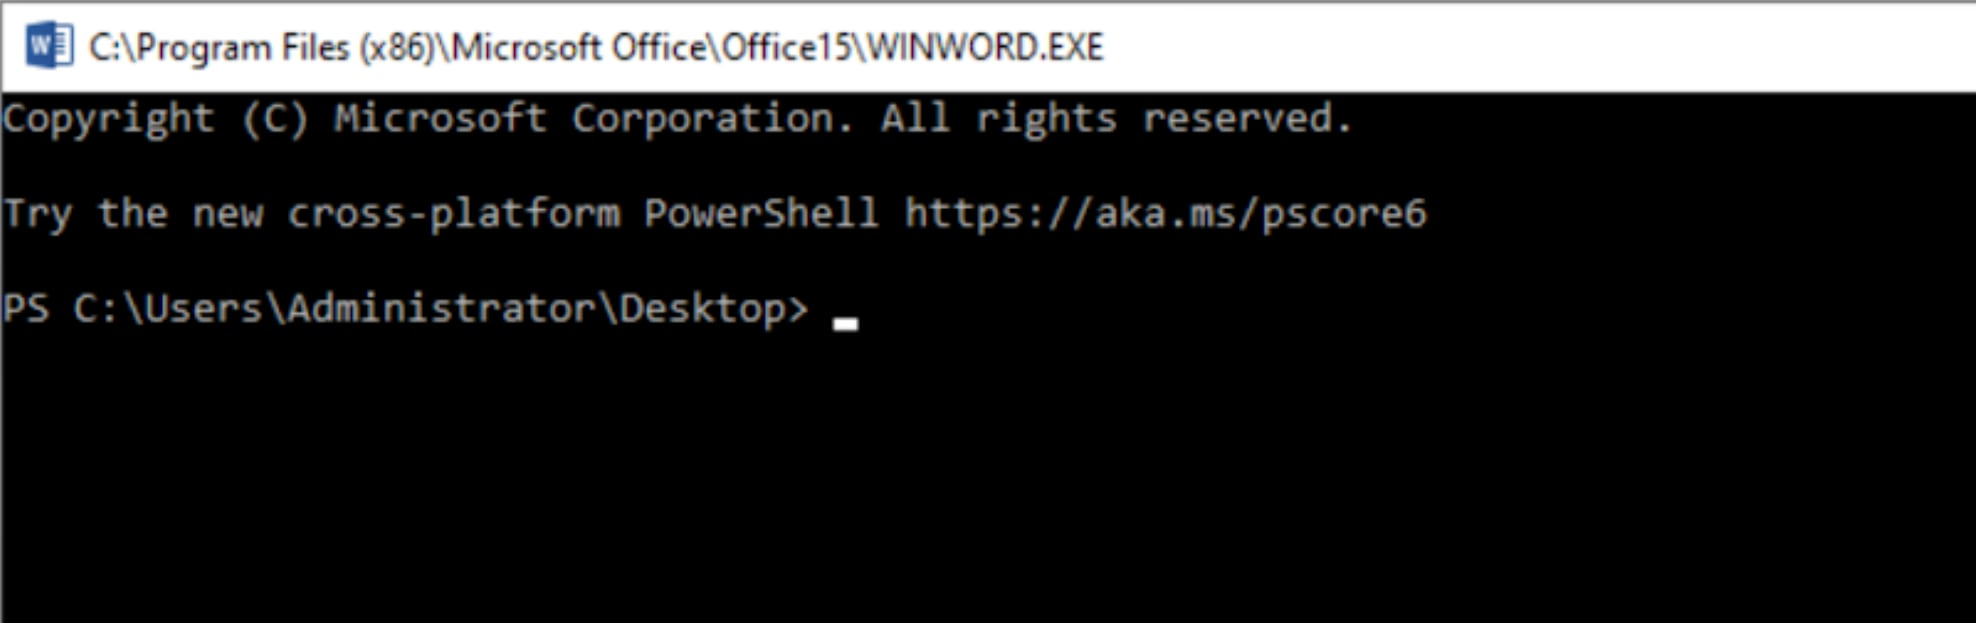 Image of how VBA-RunPE Spawns a PowerShell terminal disguised as Microsoft Word